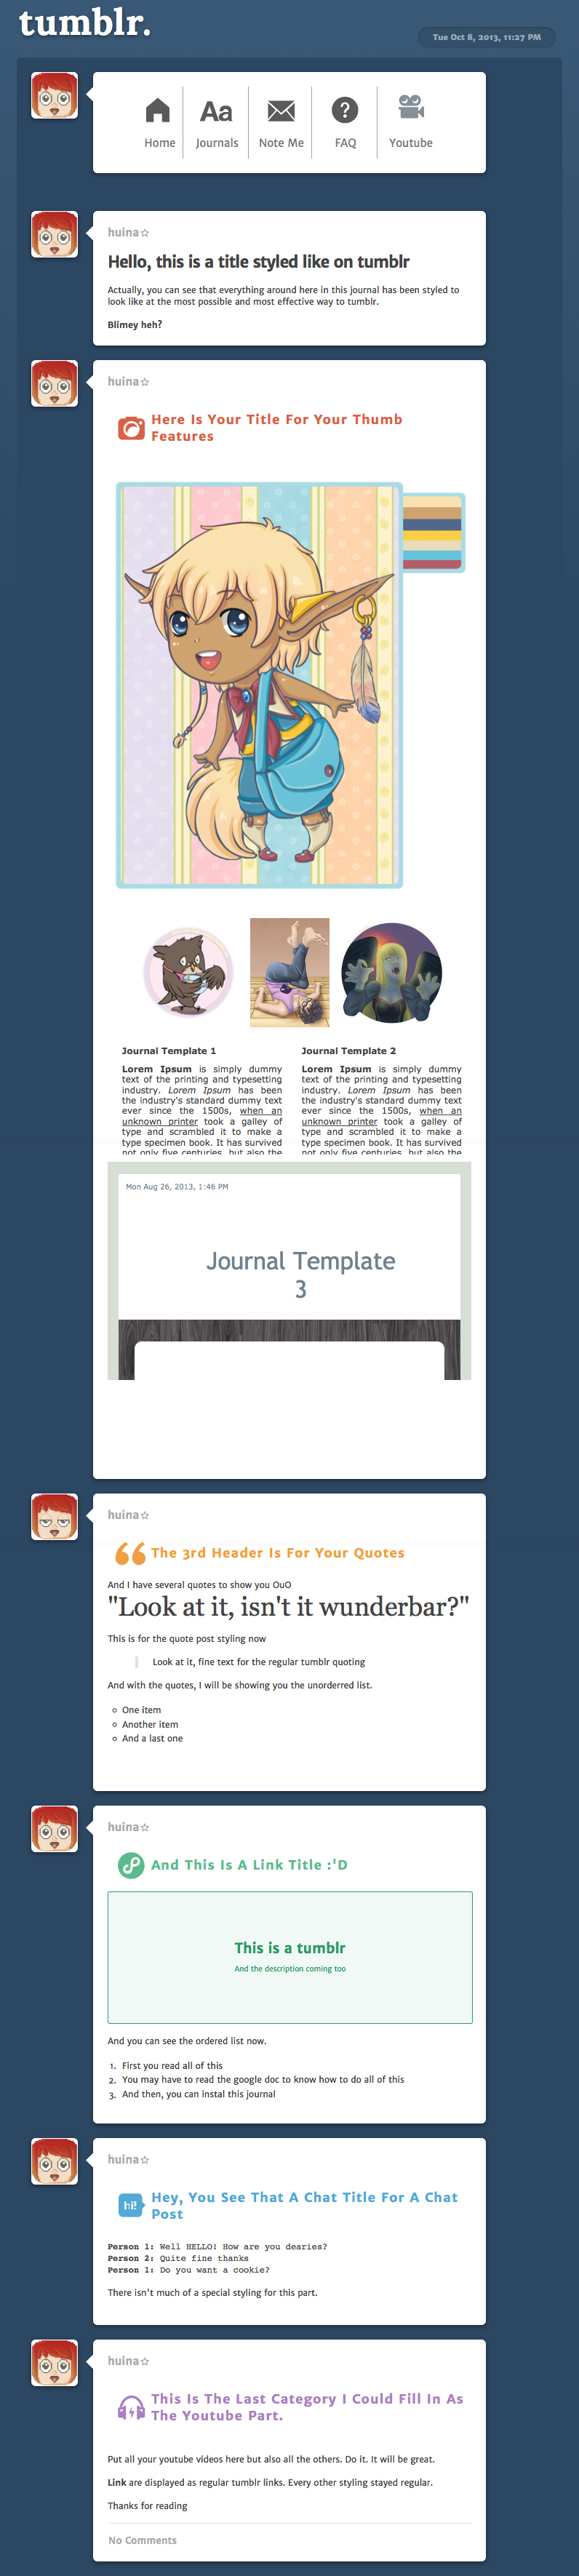 Tumblr Journal Skin by huina